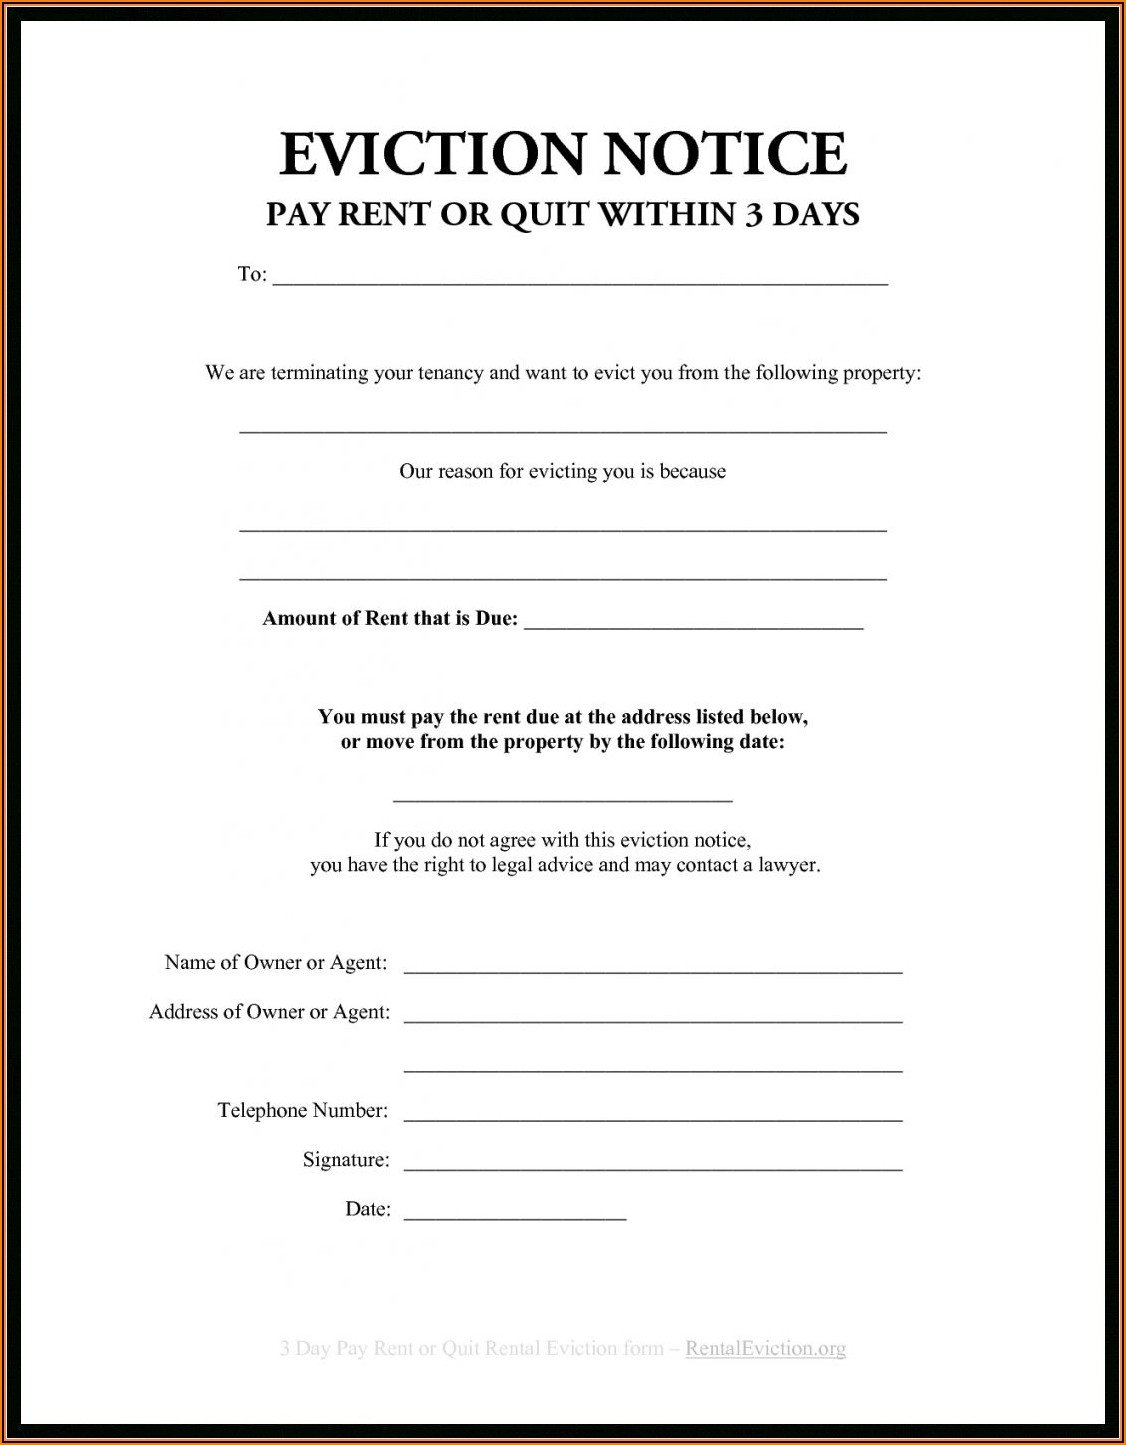 Alberta Landlord Eviction Notice Form